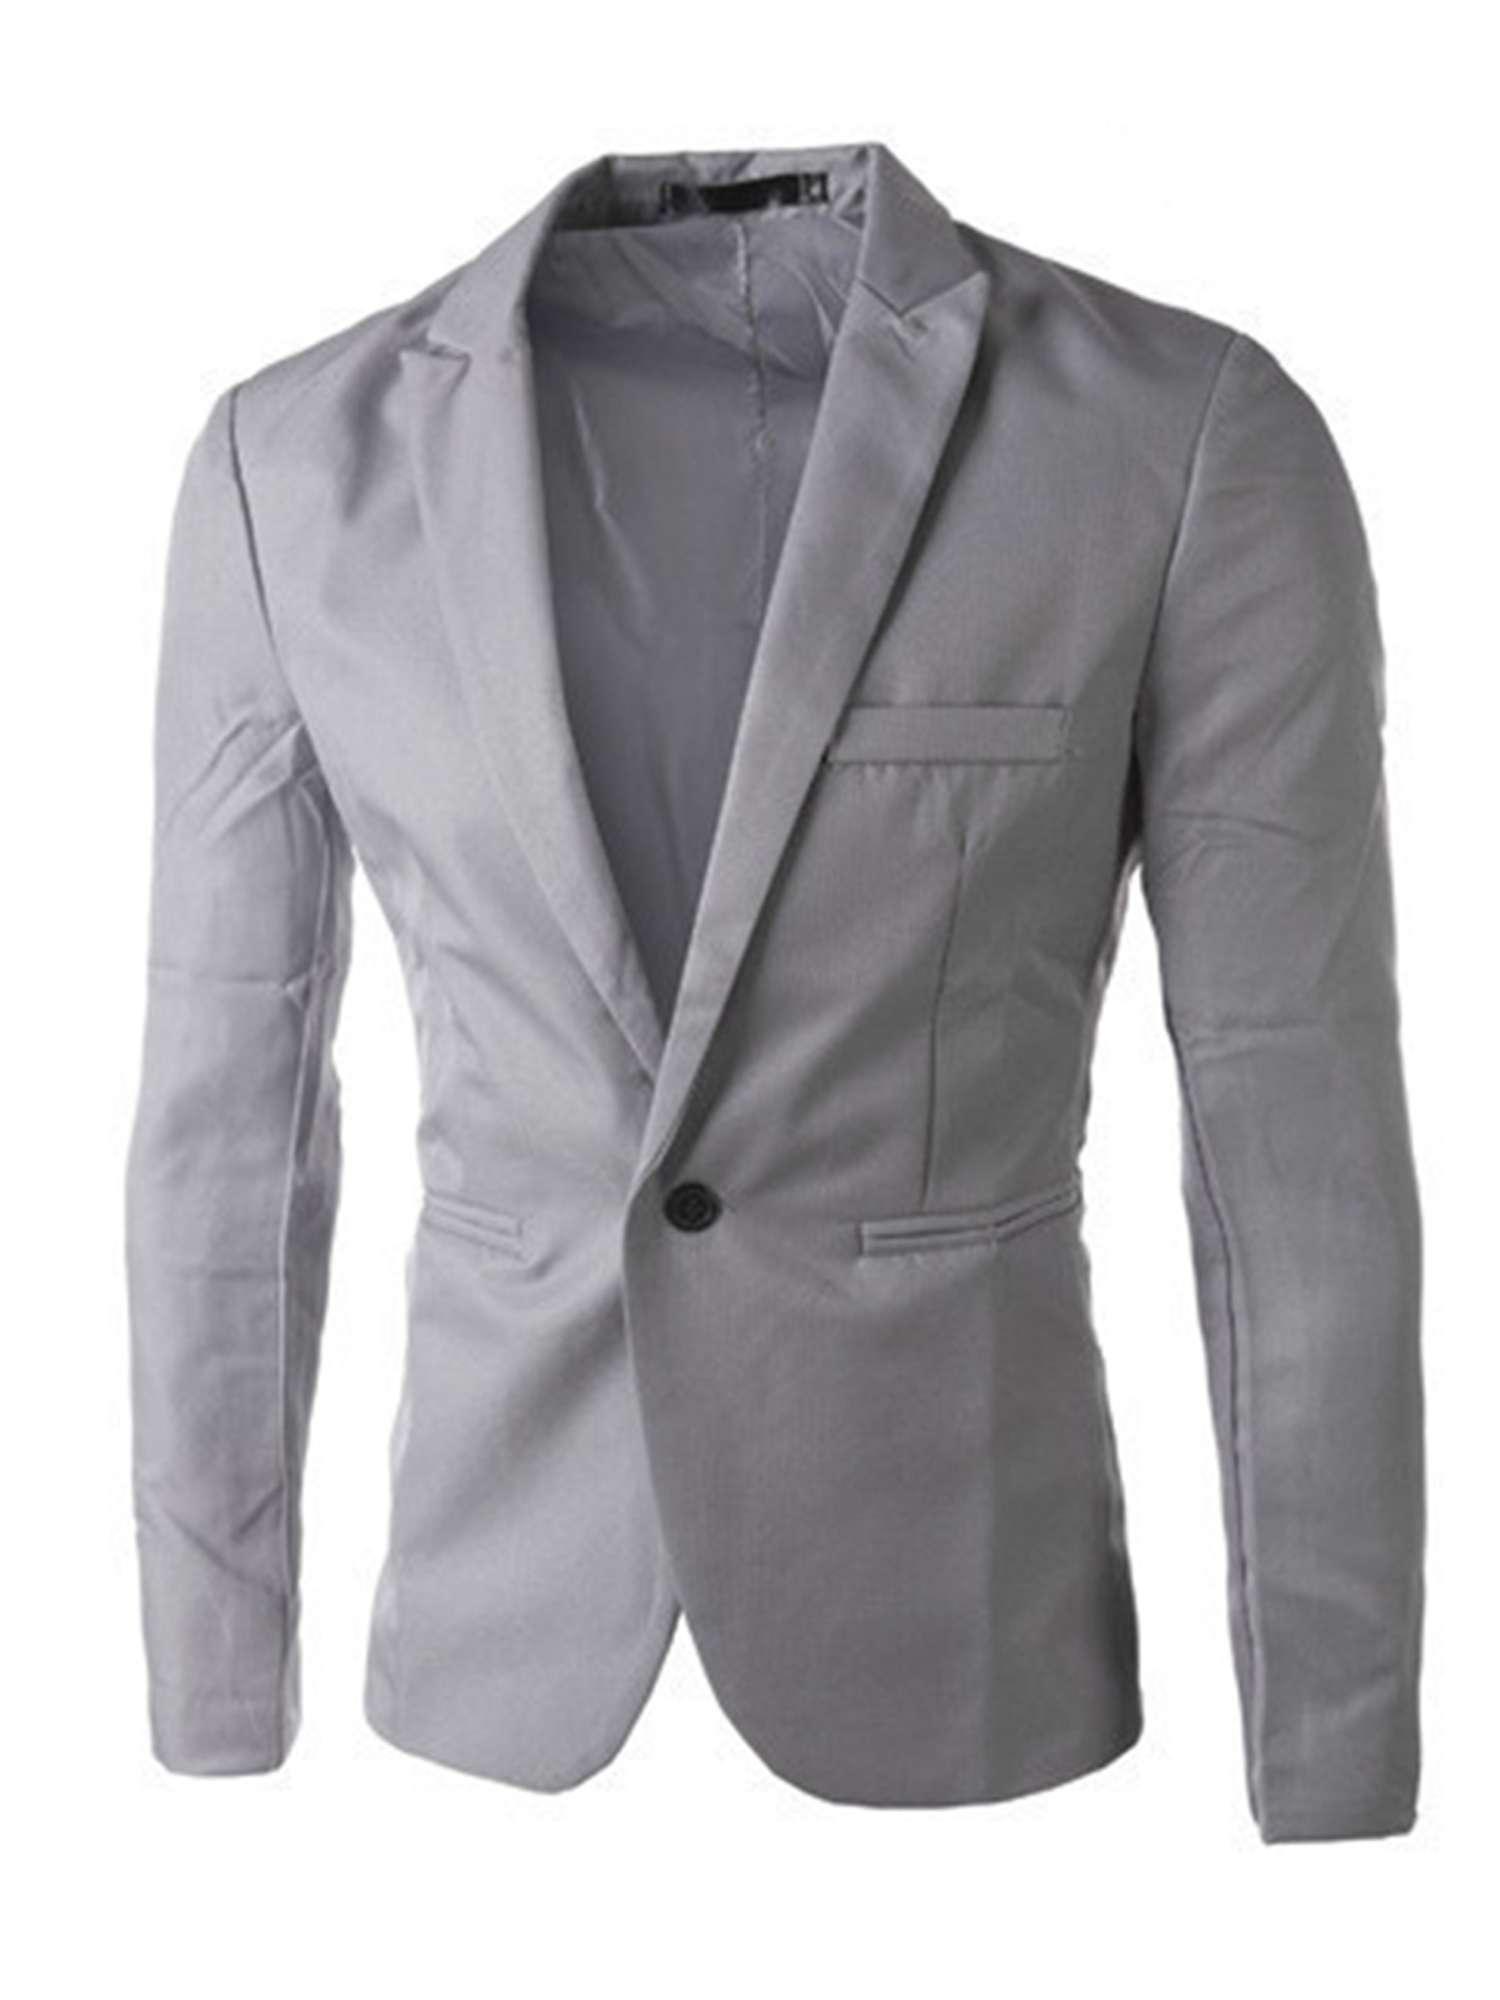 Mens Casual Slim Fit Formal Business One-Button Suit Blazer Coat Jacket Tops